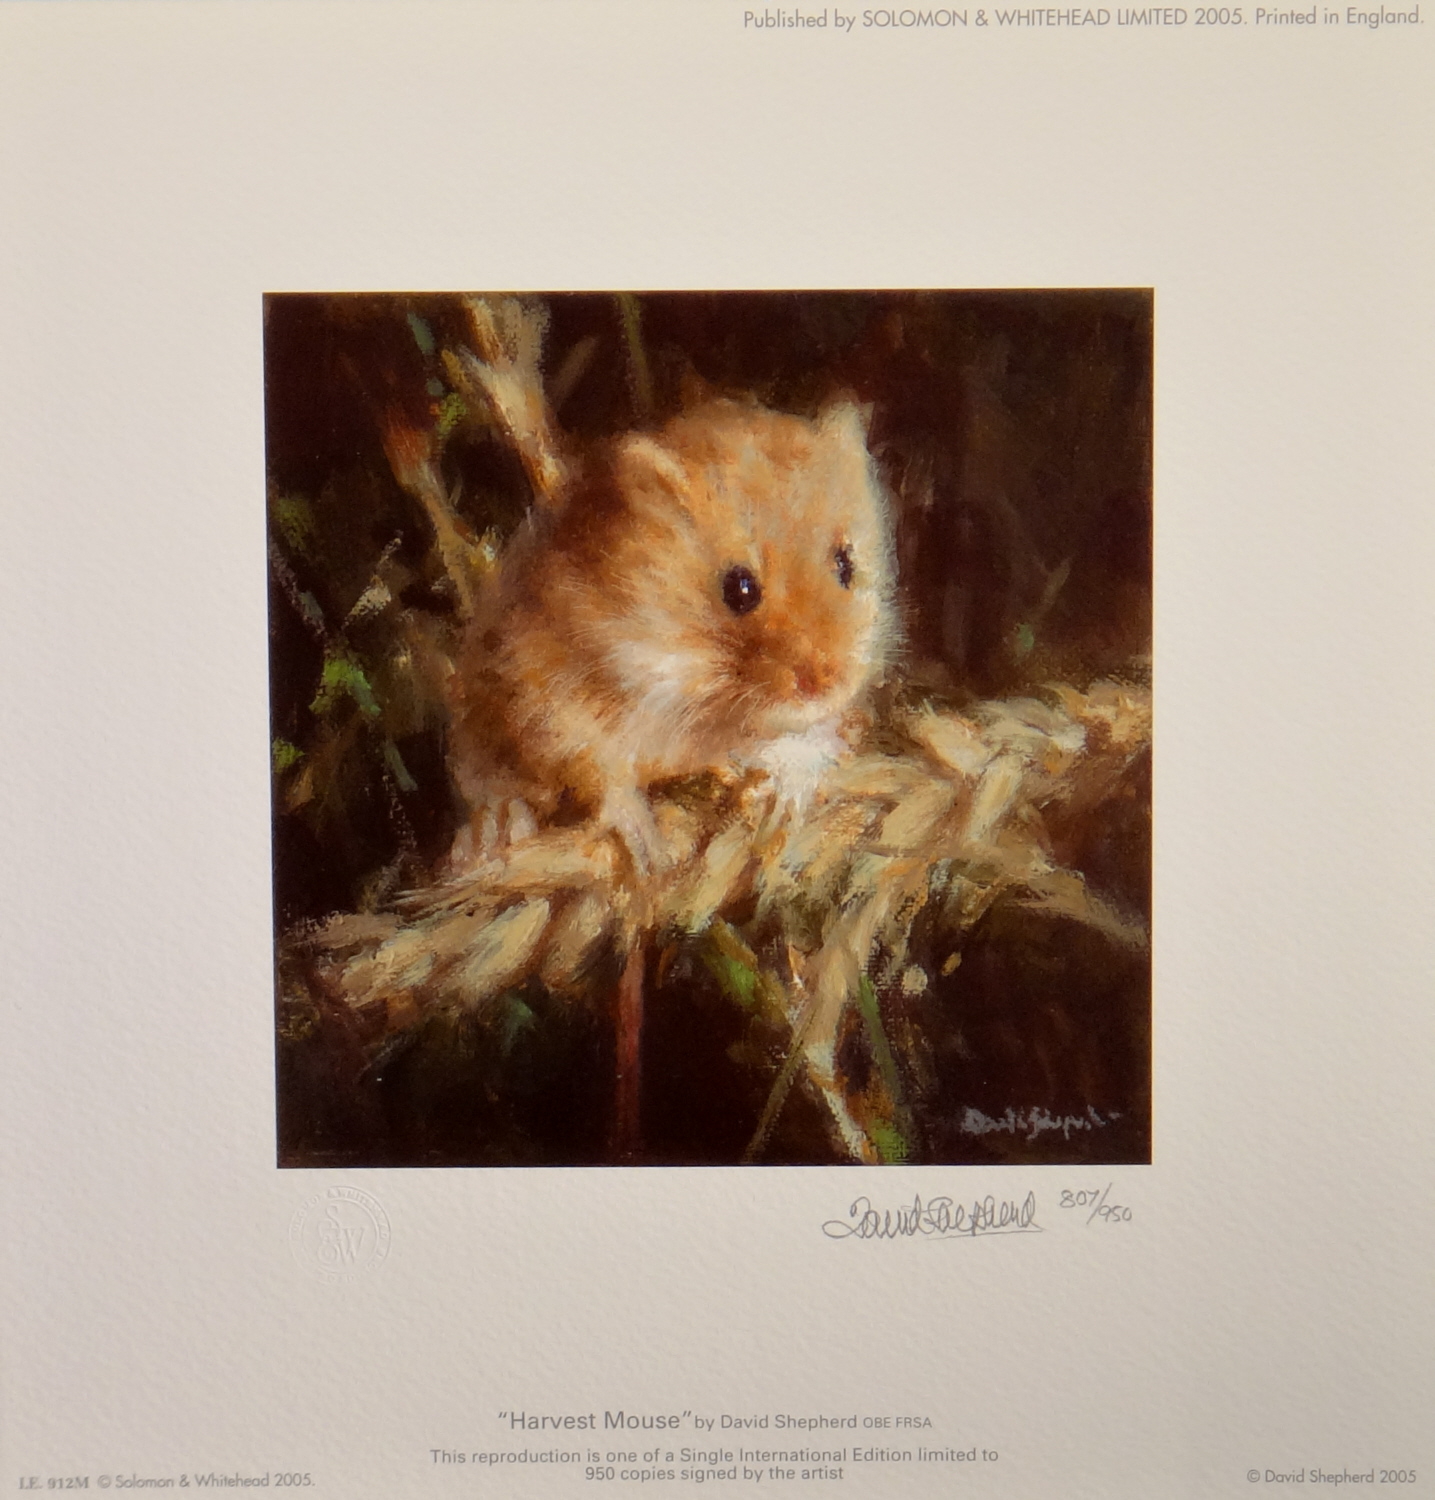 david shepherd, Harvest mouse, print